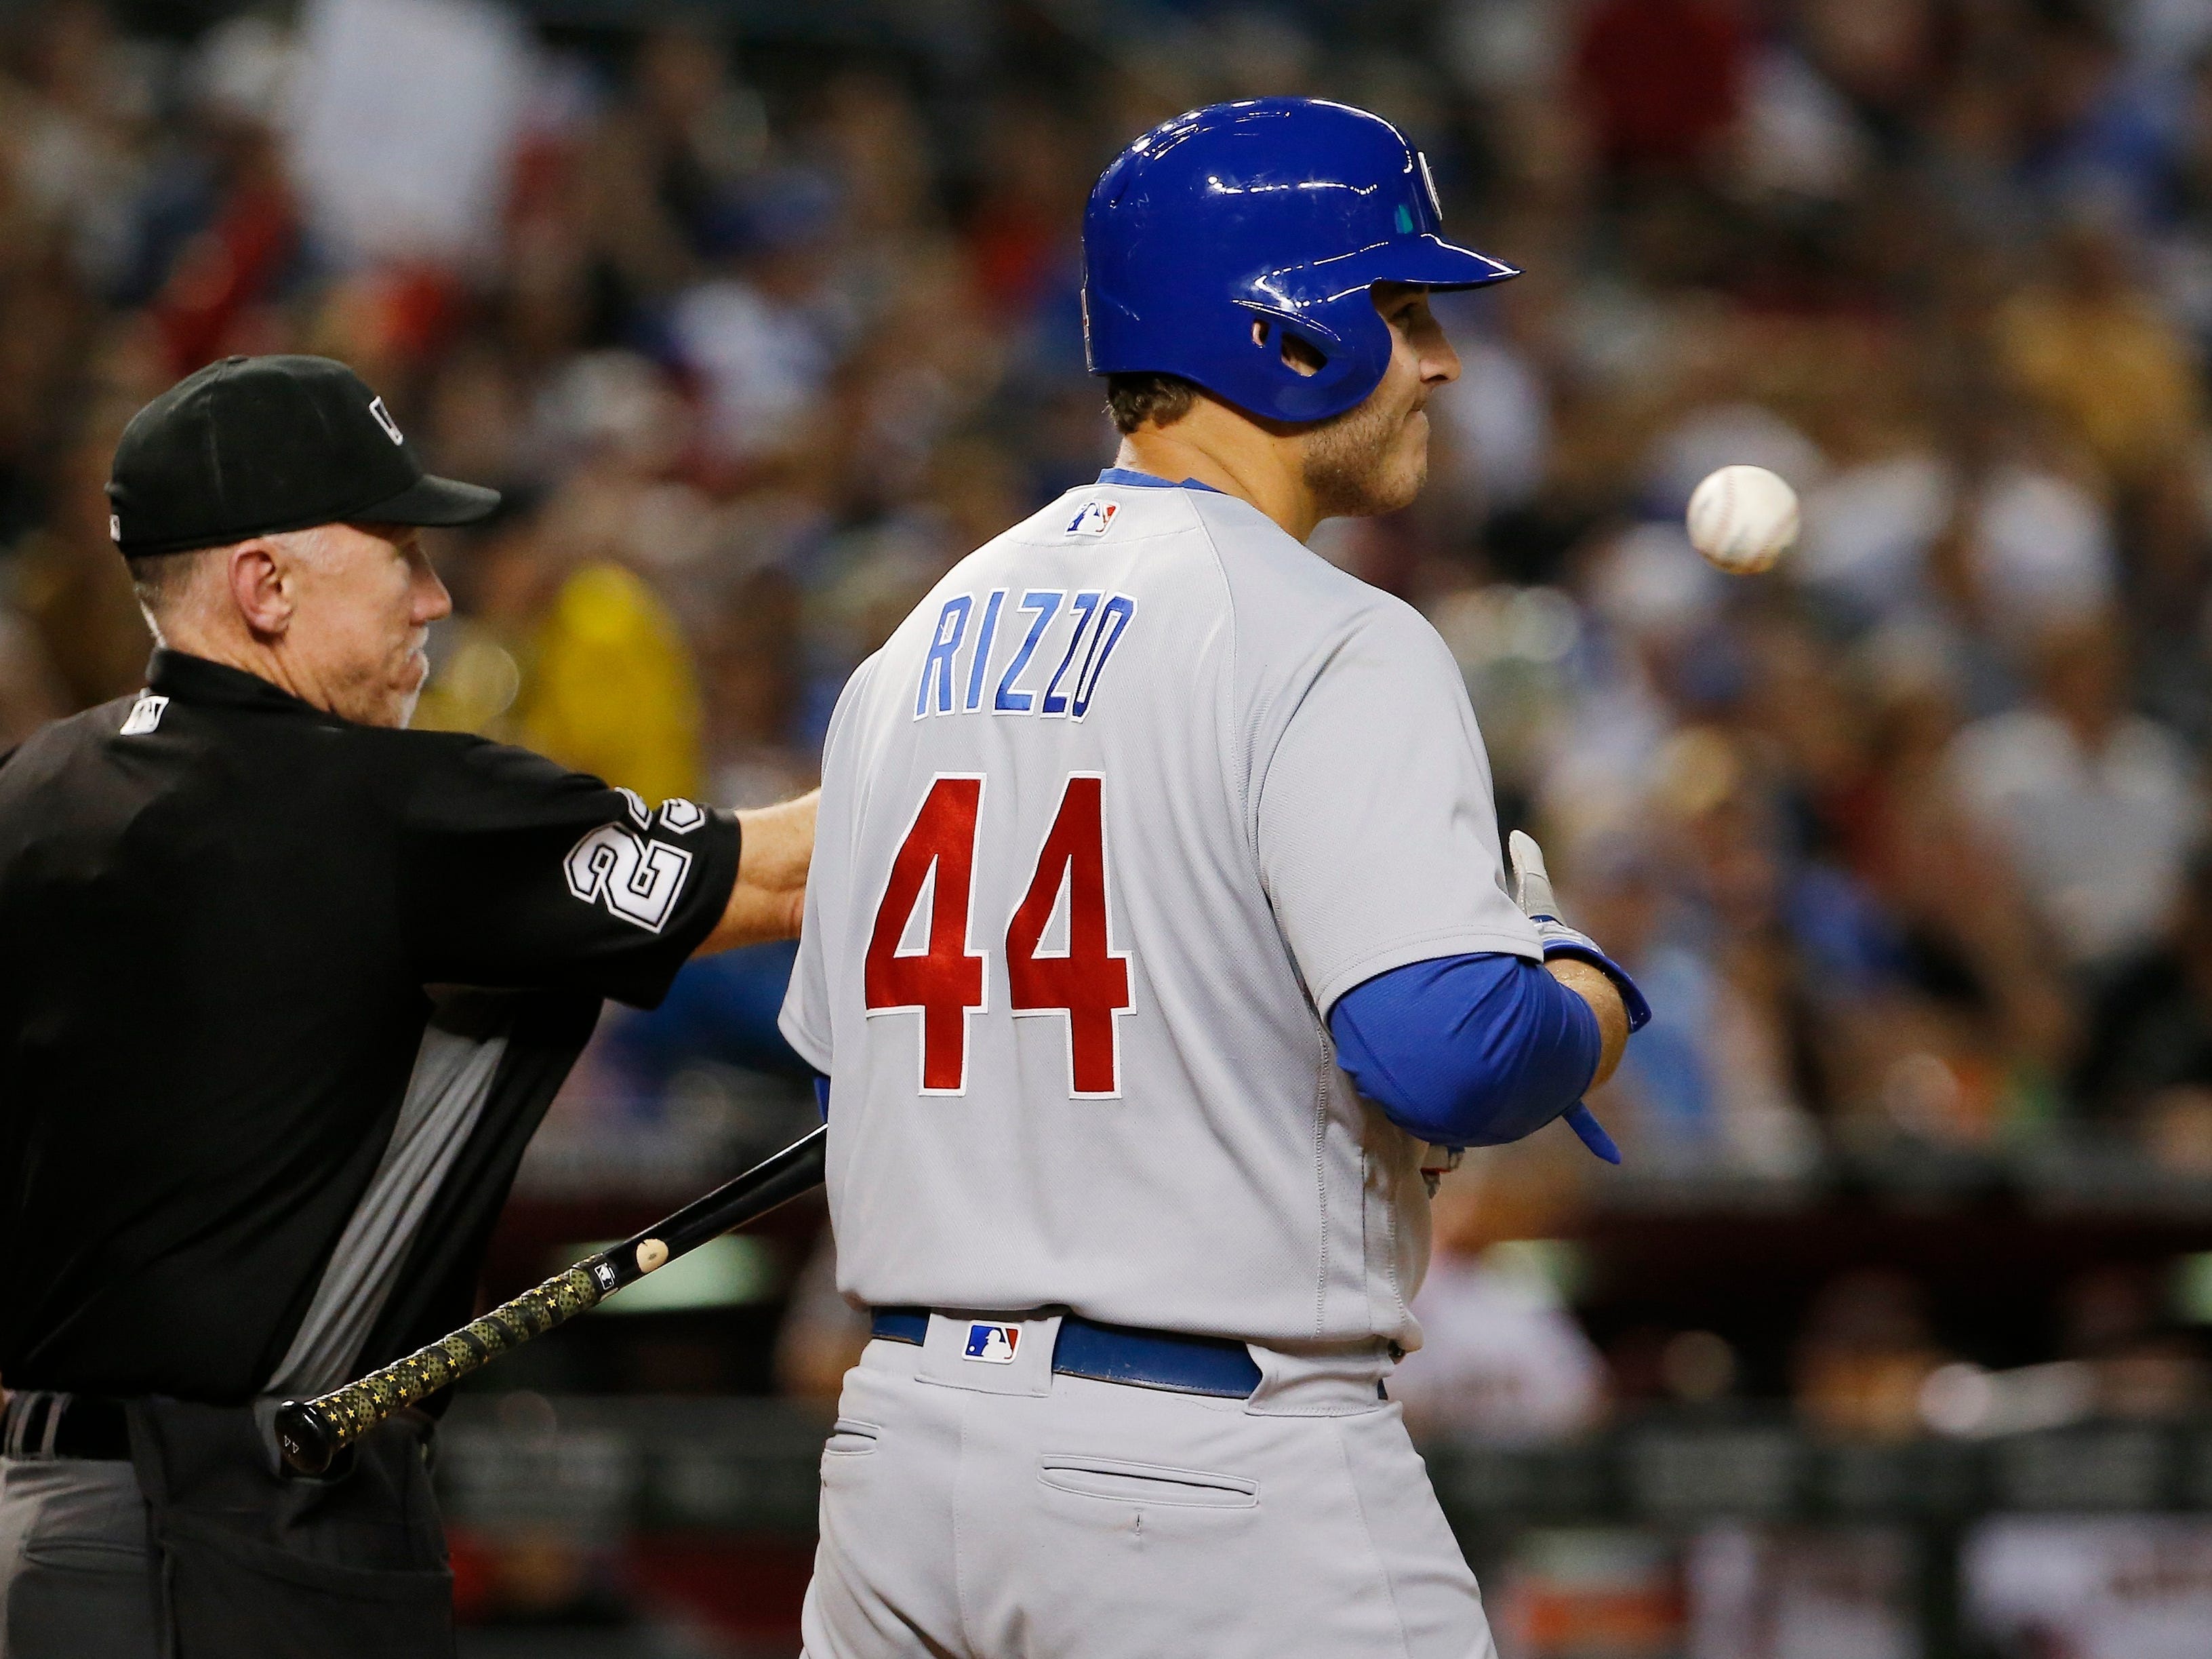 Chicago Cubs' Anthony Rizzo (44) frowns after being called out on strikes by umpire Lance Barksdale, left, during the third inning of a baseball game against the Arizona Diamondbacks on Wednesday, Sept. 19, 2018, in Phoenix.